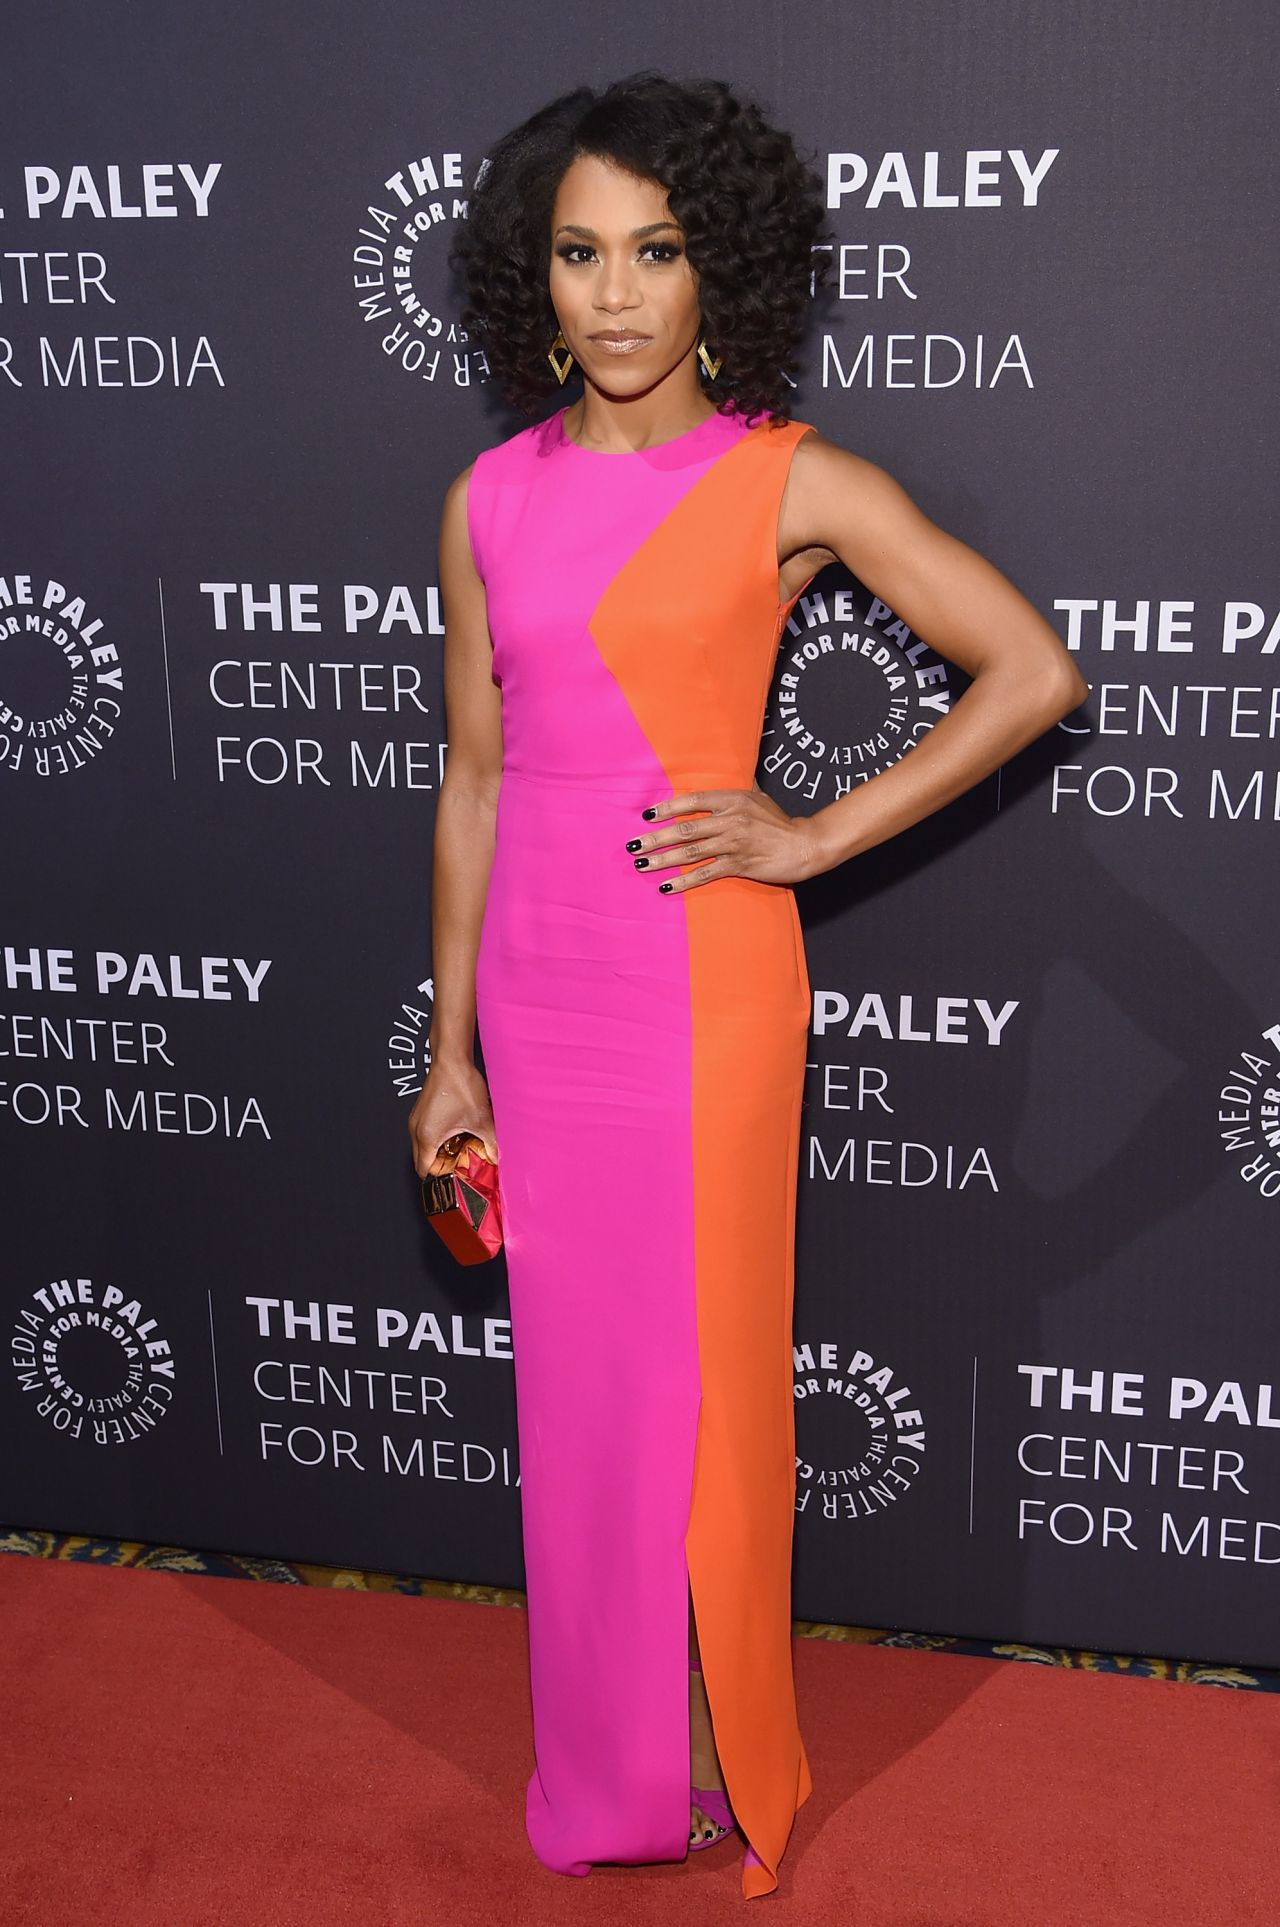 Kelly Mccreary Tribute To African American Achievements